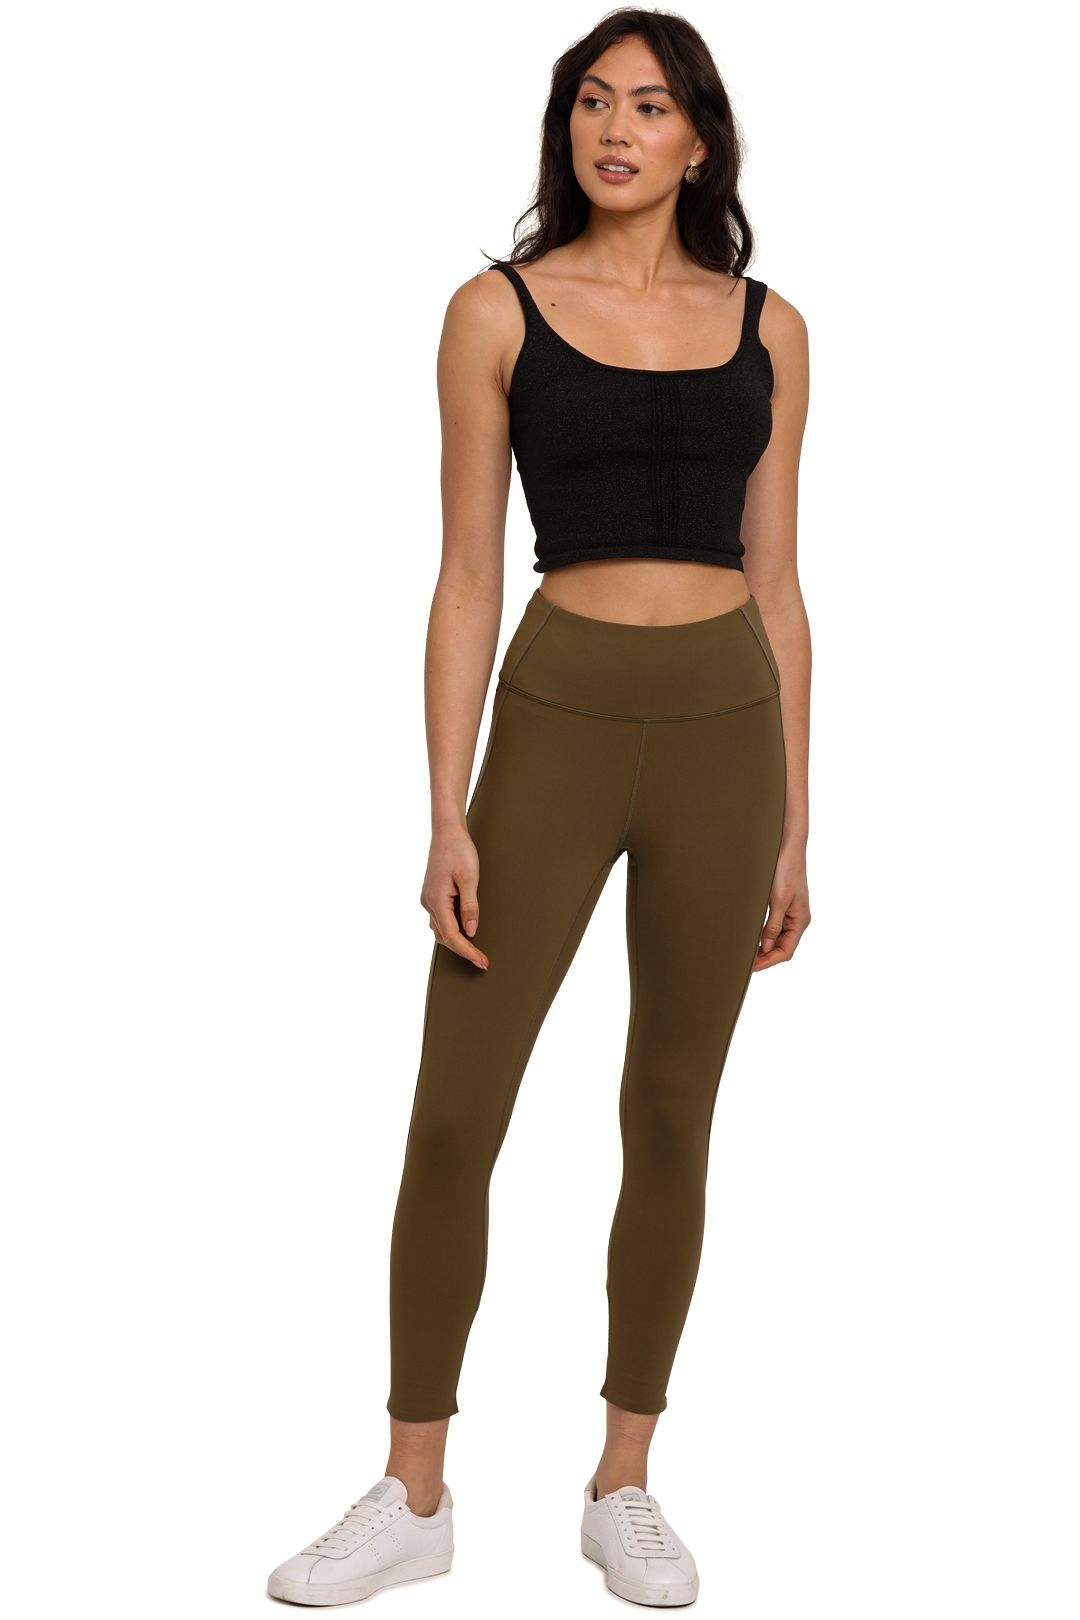 C&M Camilla And Marc Kennedy Panelled Leggings high